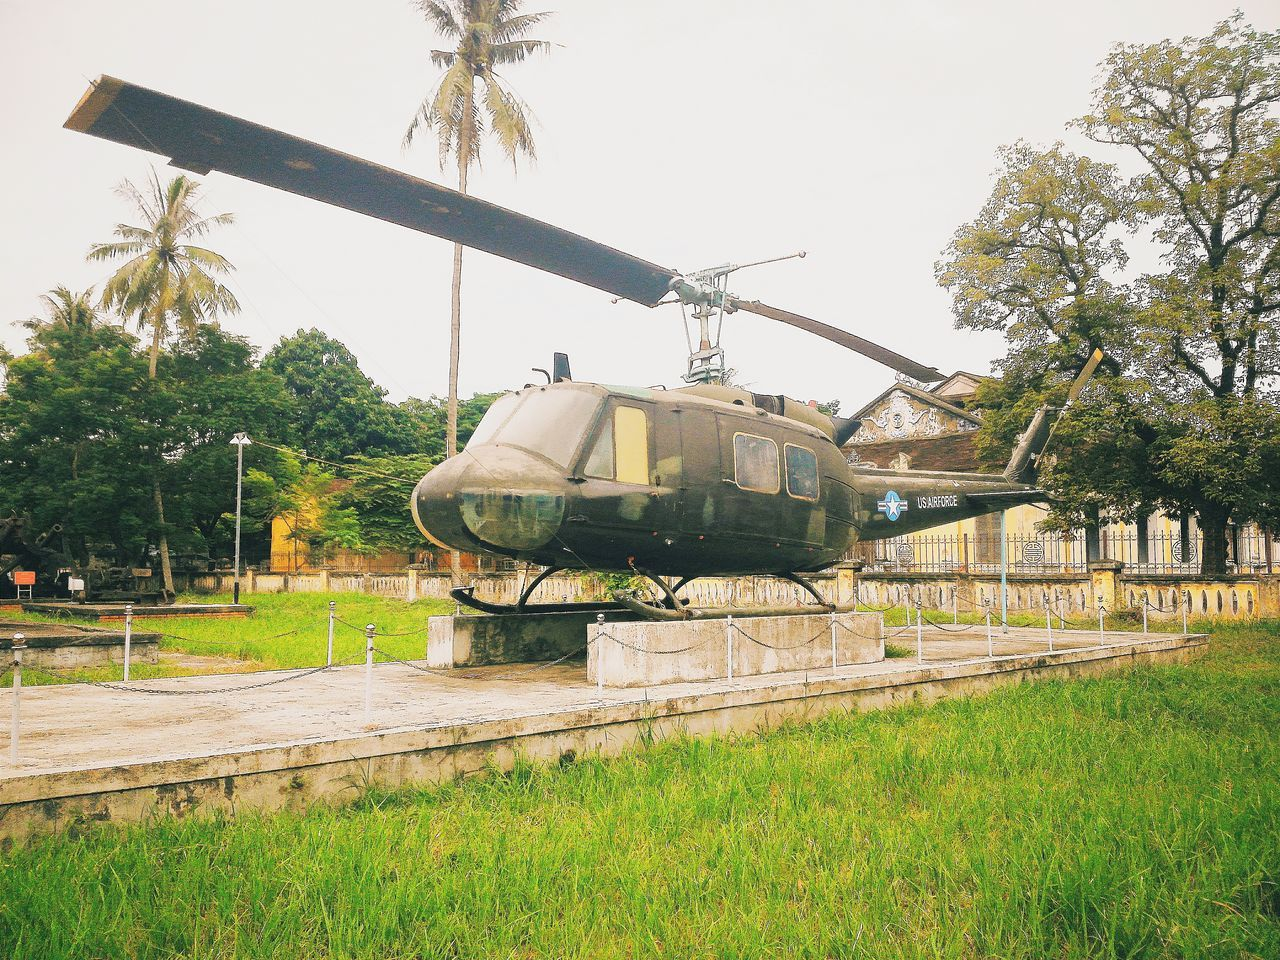 Transportation Outdoors Sky Vacations Travel EyeEm Vietnam EyeEm Best Shots Eyeemphotography Huế Vietnam Taking Photos Vietnamwar Weapons Of War Green Helicopter Helicopter Tree Built Structure Transportation UH-1 Independence Day Museum Museum Of Flight Museum Of War